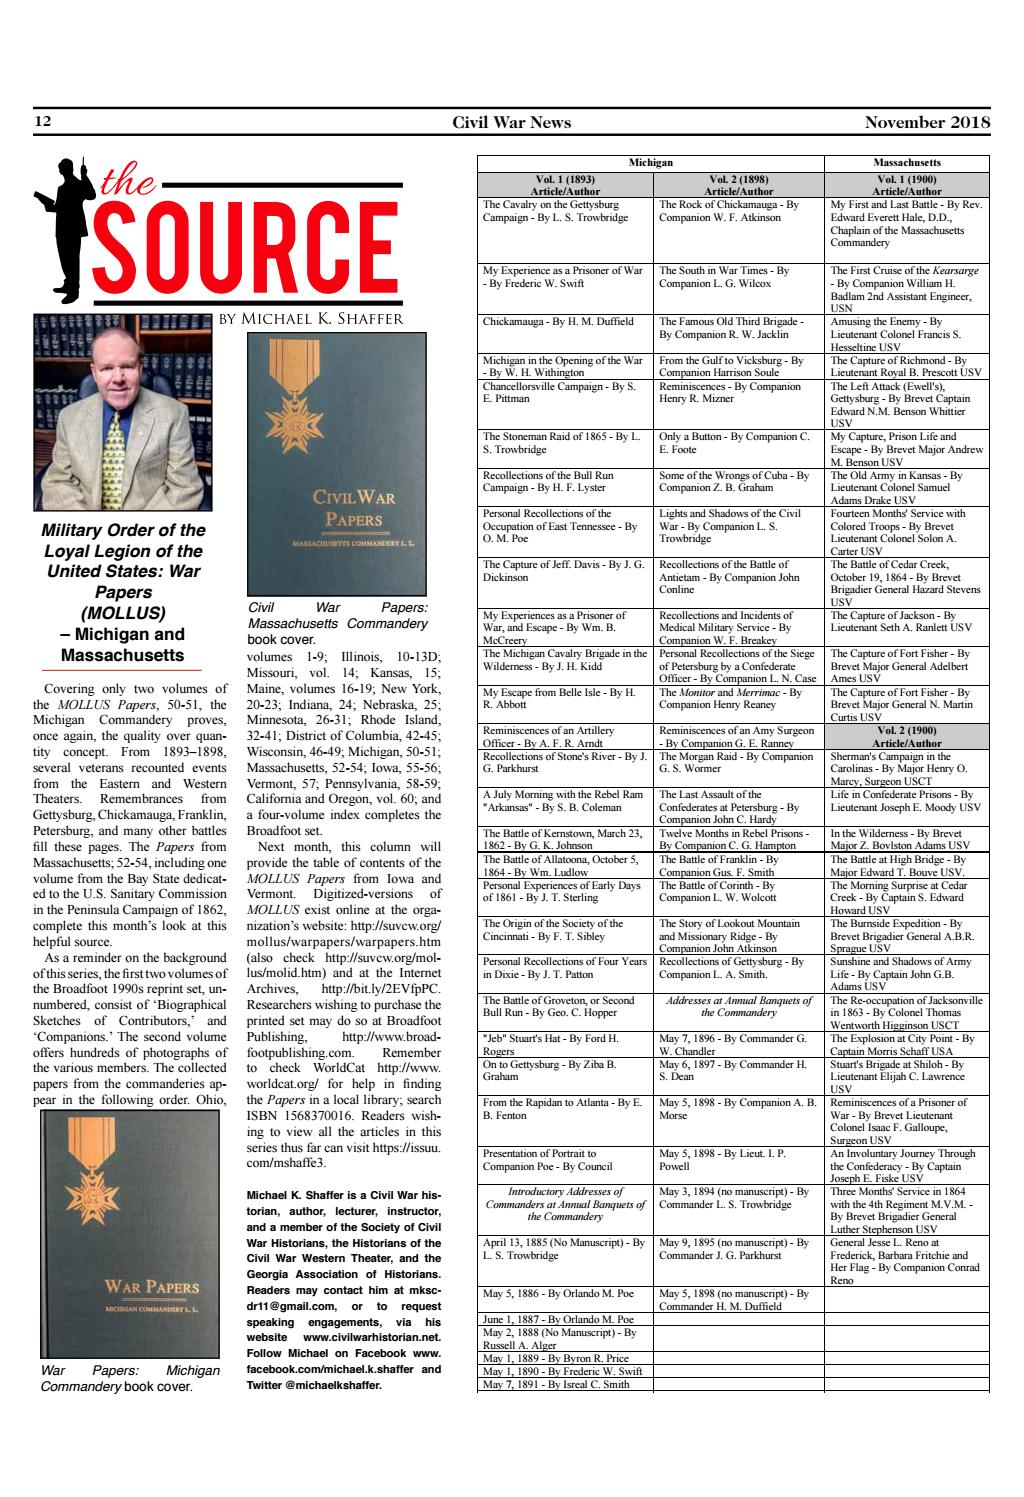 'The Source' November 2018